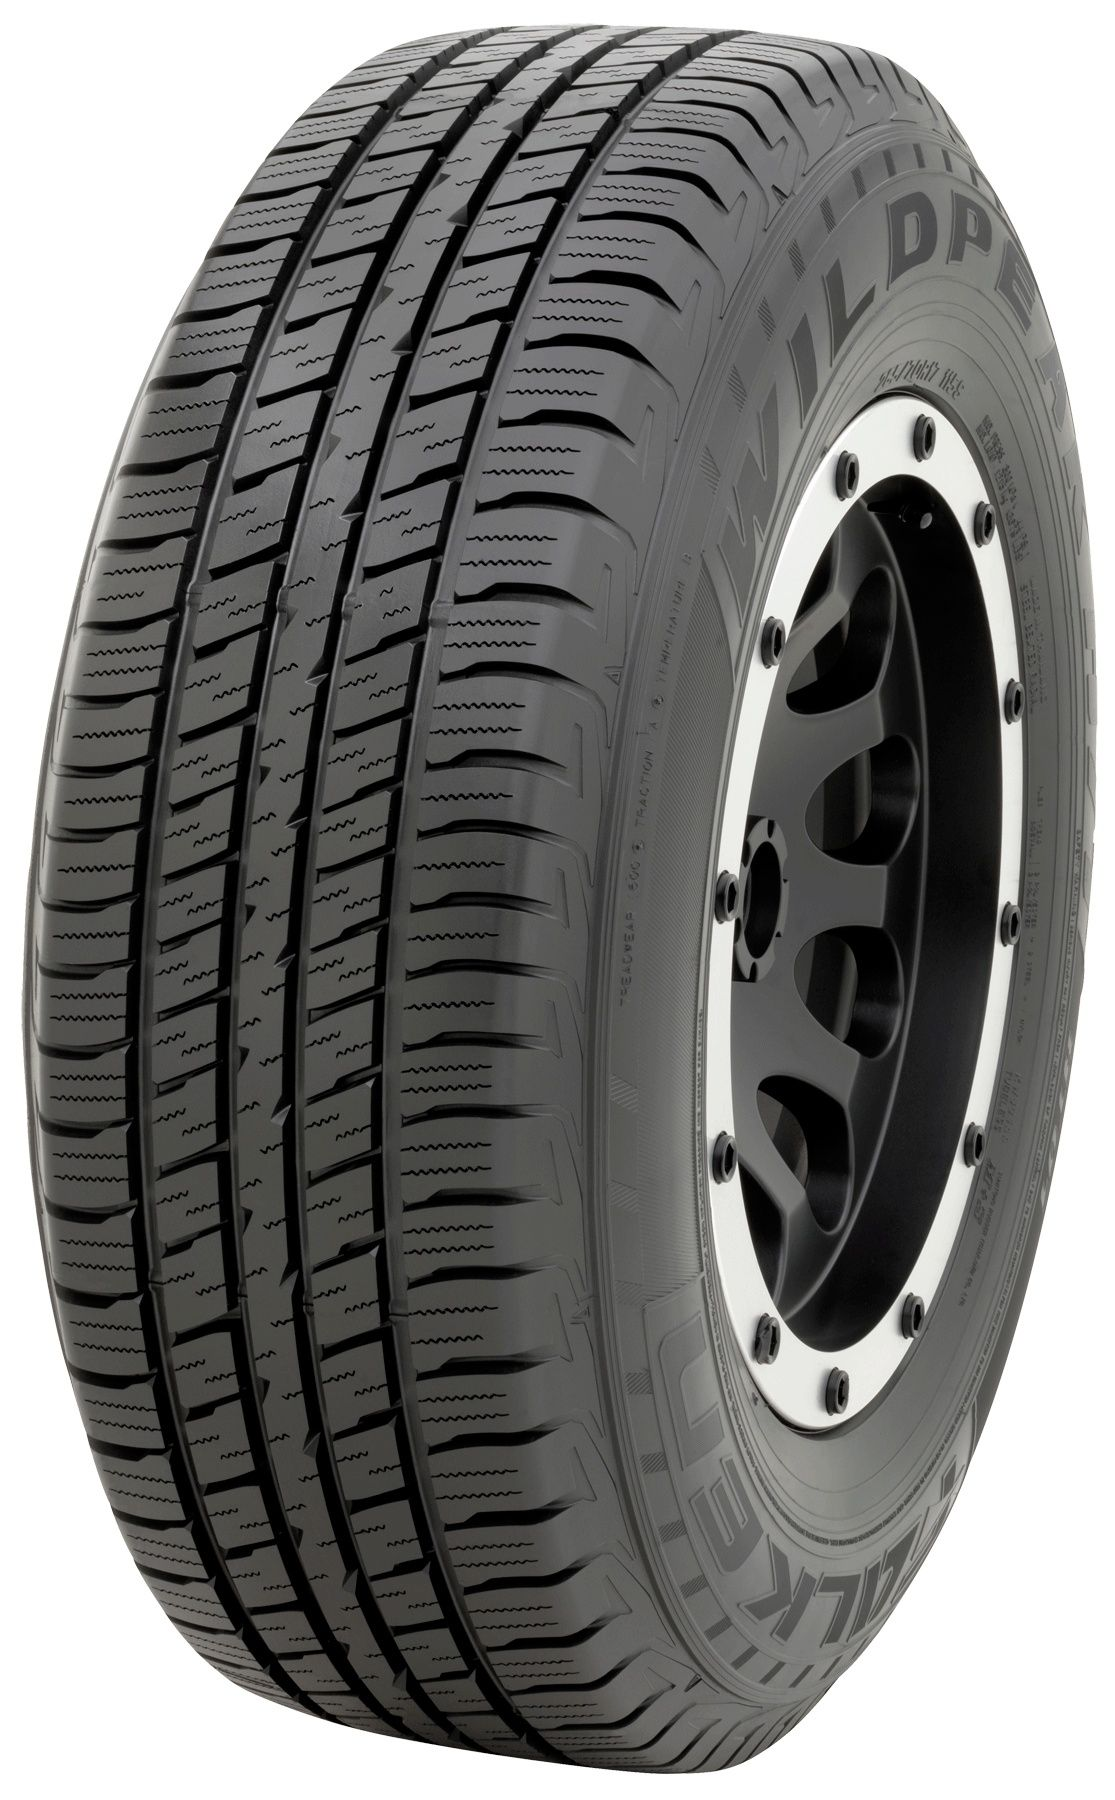 Falken Wild Peak H/T - 265/70R17 115S BW - All-Season LT Tire 265-70-17